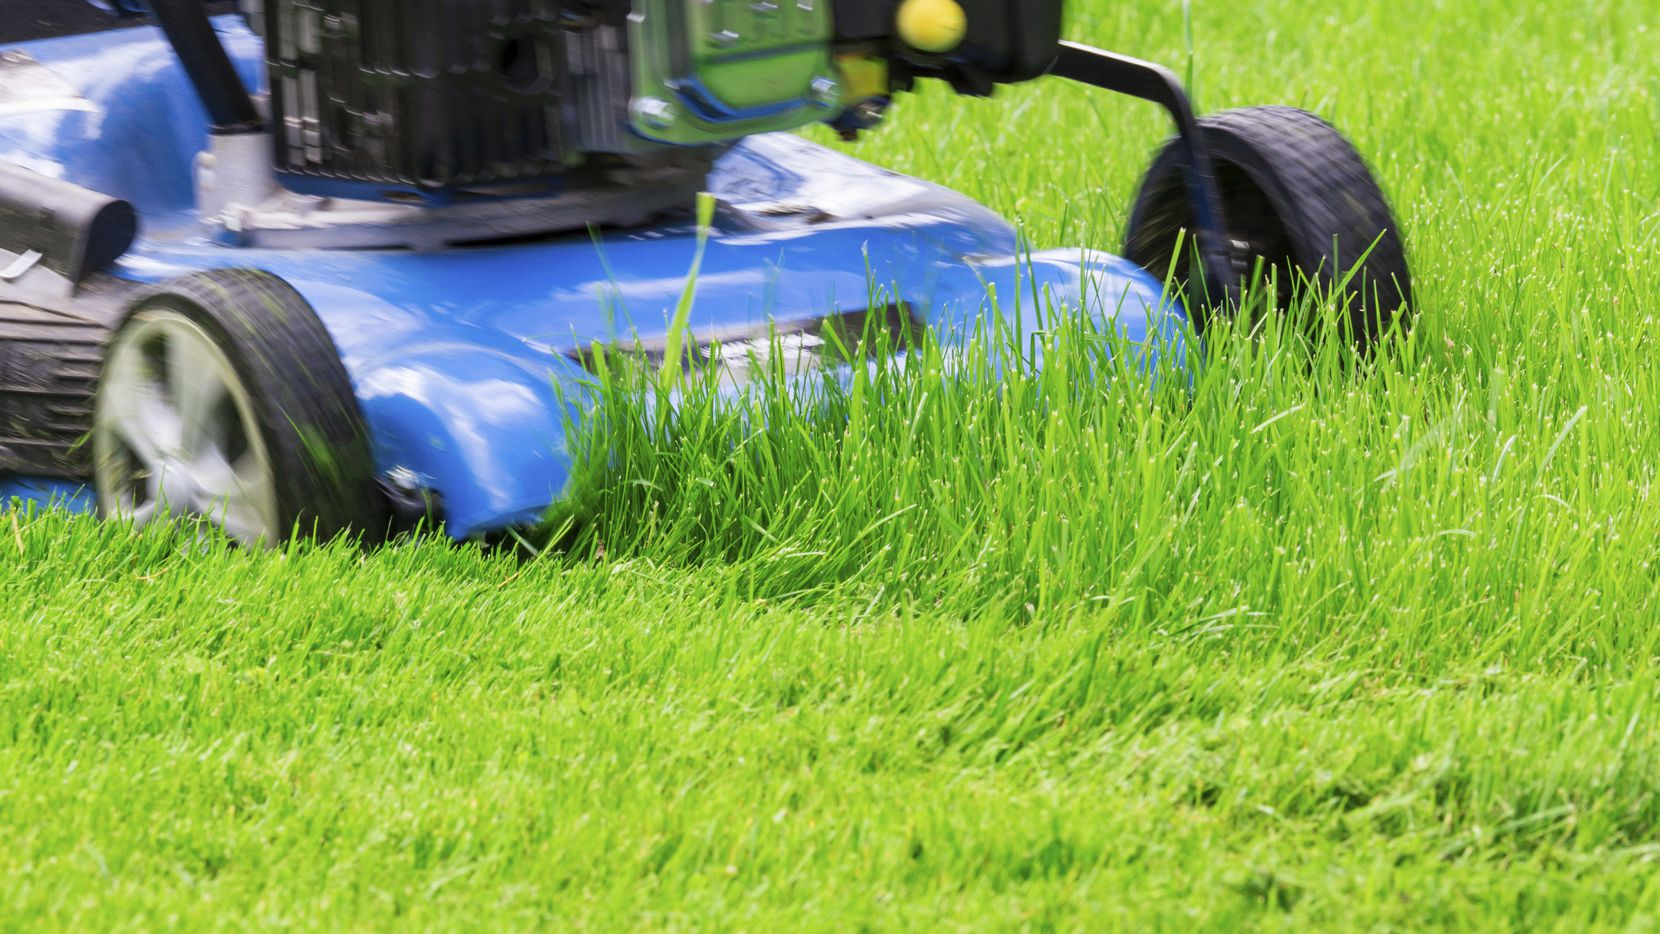 It's a good idea to have your lawn mower serviced by a professional before tackling that summer grass.